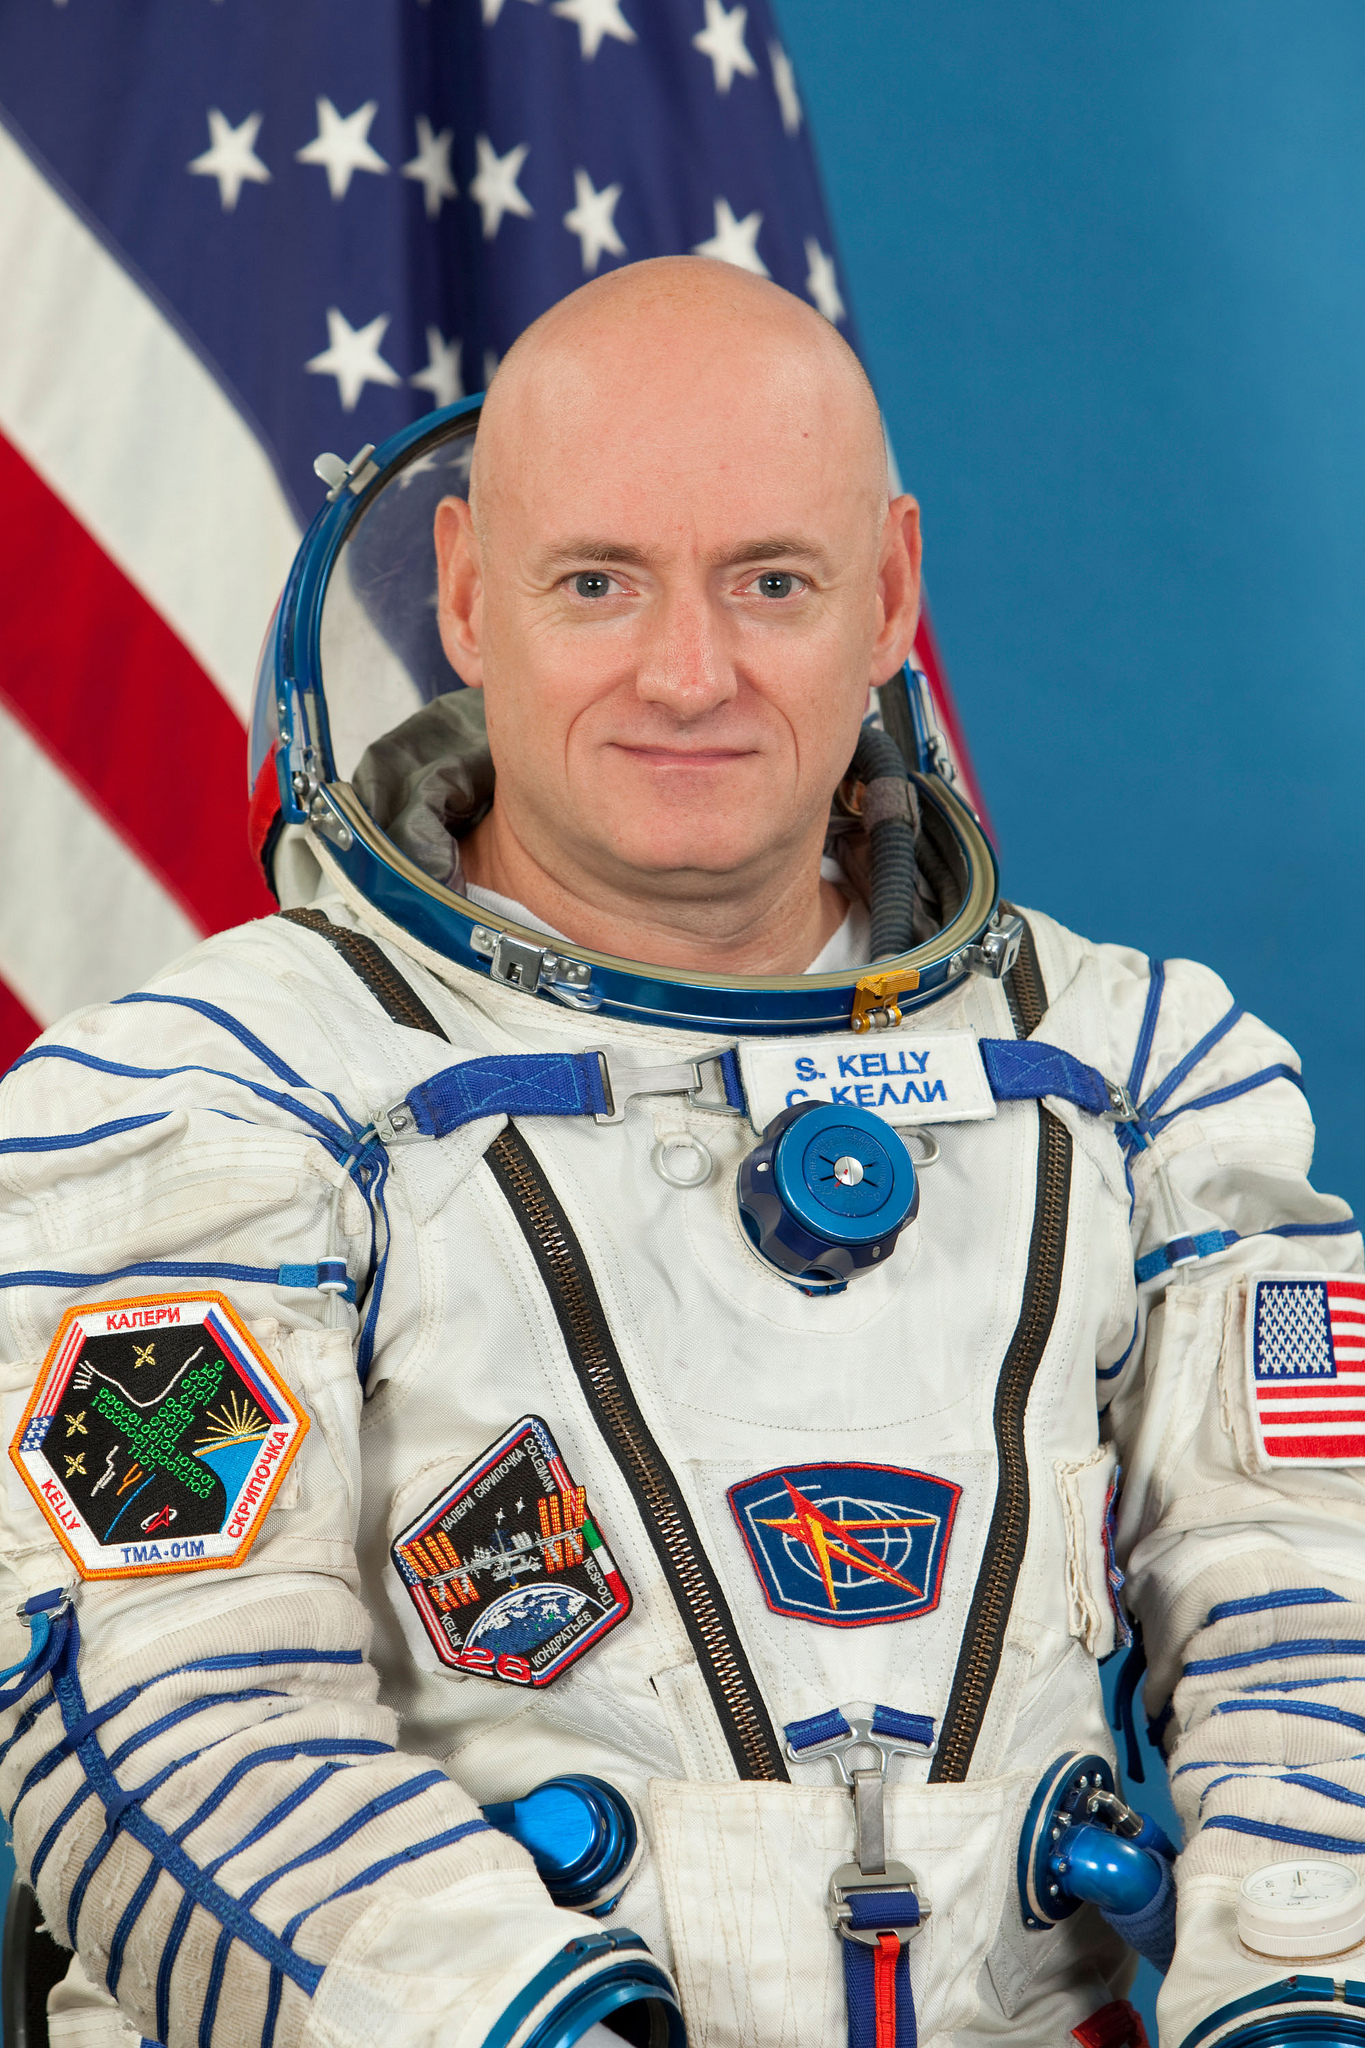 4df1de3797bfdc7cd70a_d0d44ece01d0a05b2bb8_Scott_Kelly_courtesy_NASA__1_.JPG